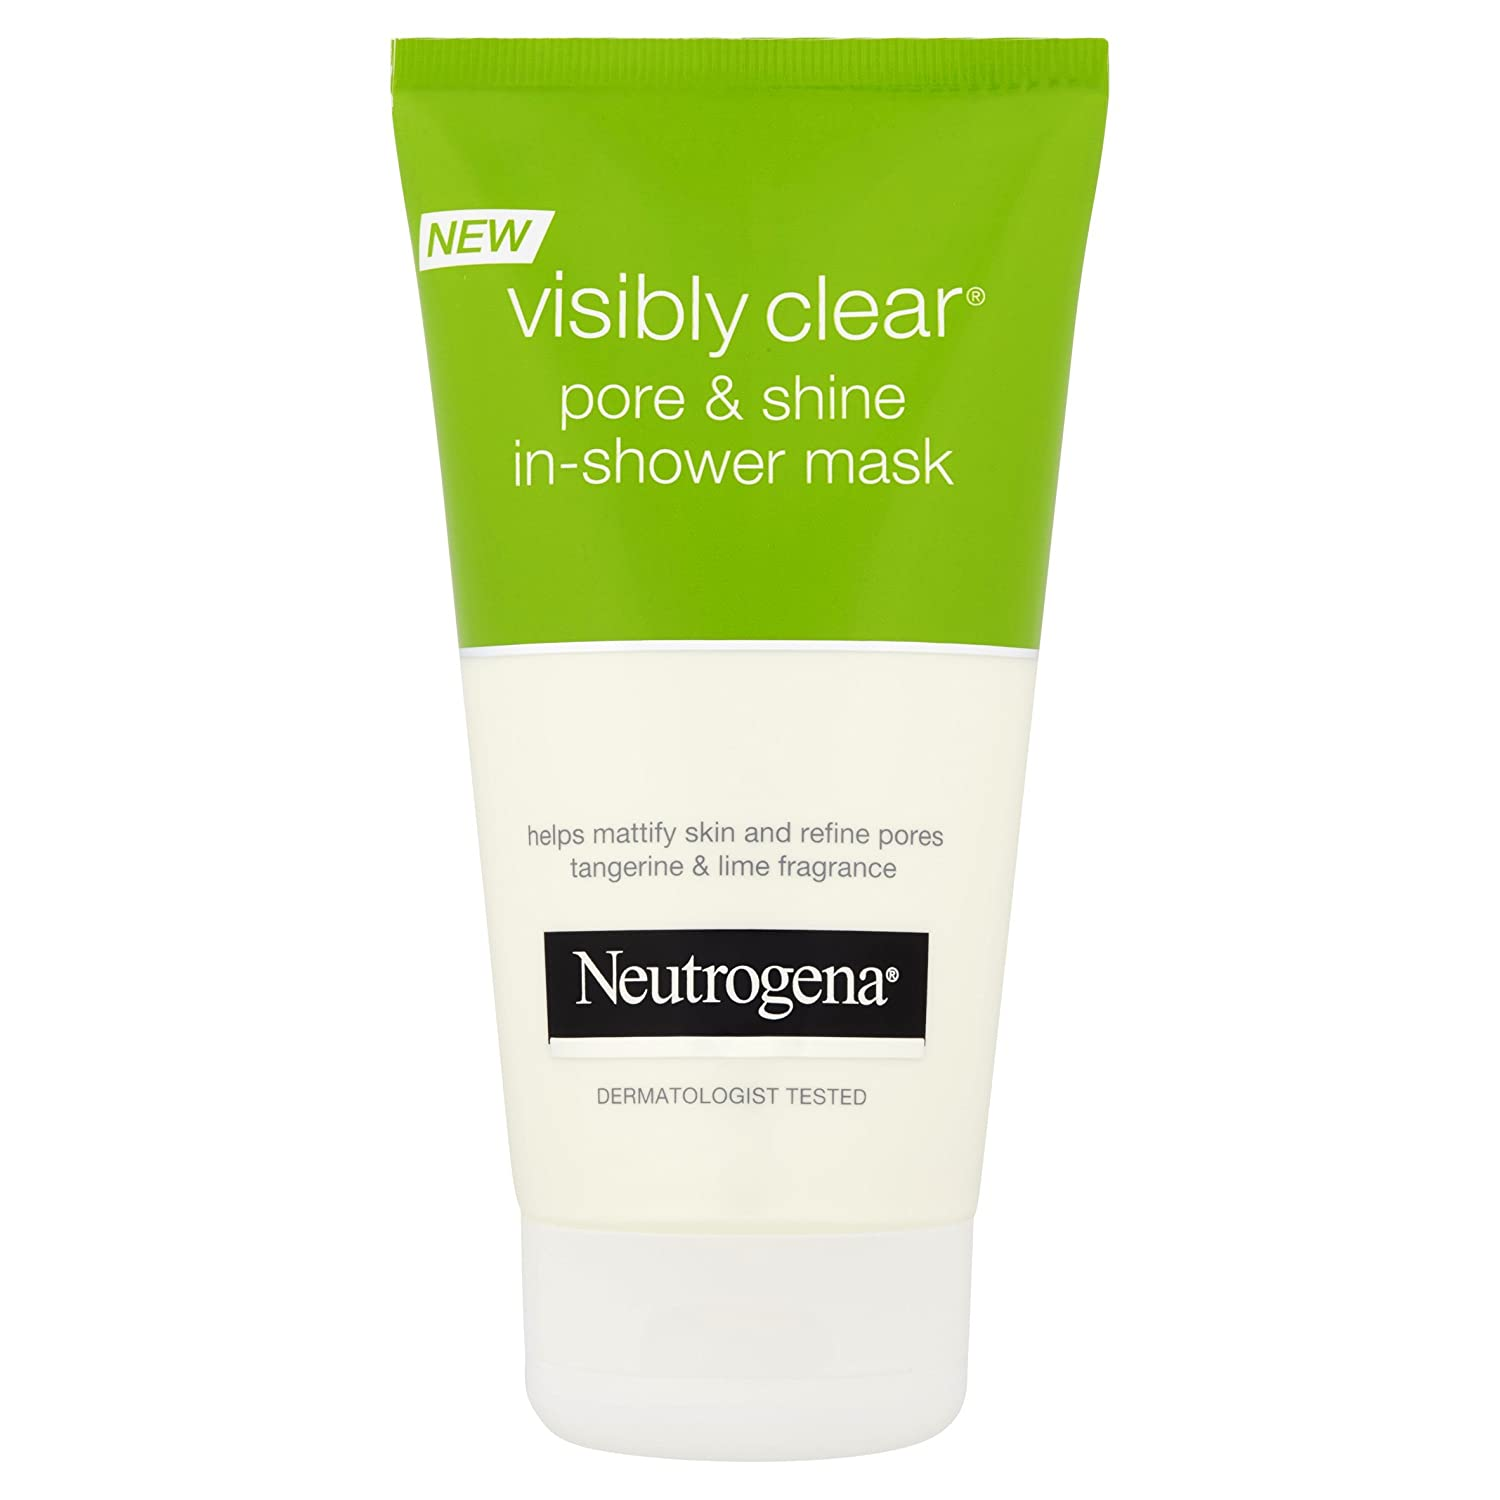 Neutrogena Visibly Clear Pore & Shine Mascarilla De Ducha - 150 ml ...